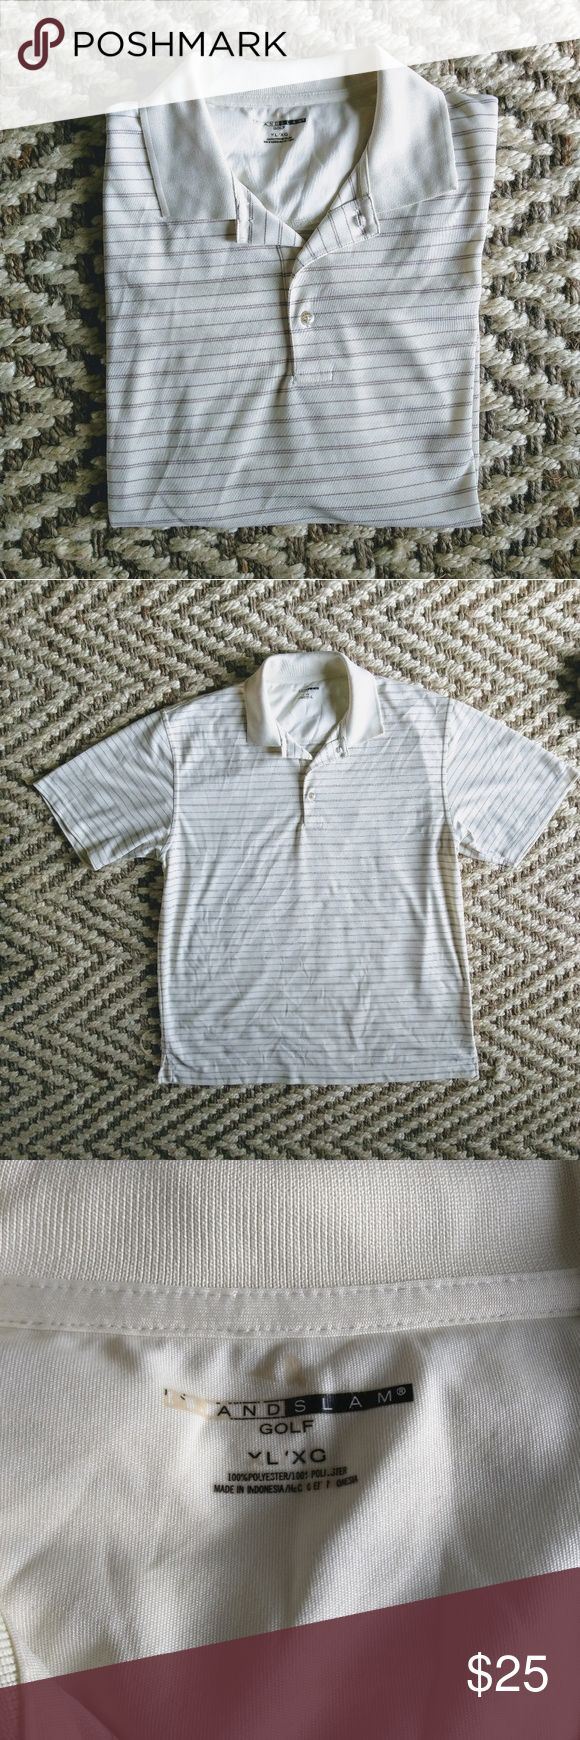 Men's Nike Golf Polo Shirt Very nice golf shirt for men by Nike. Excellent worn condition Nike Shirts